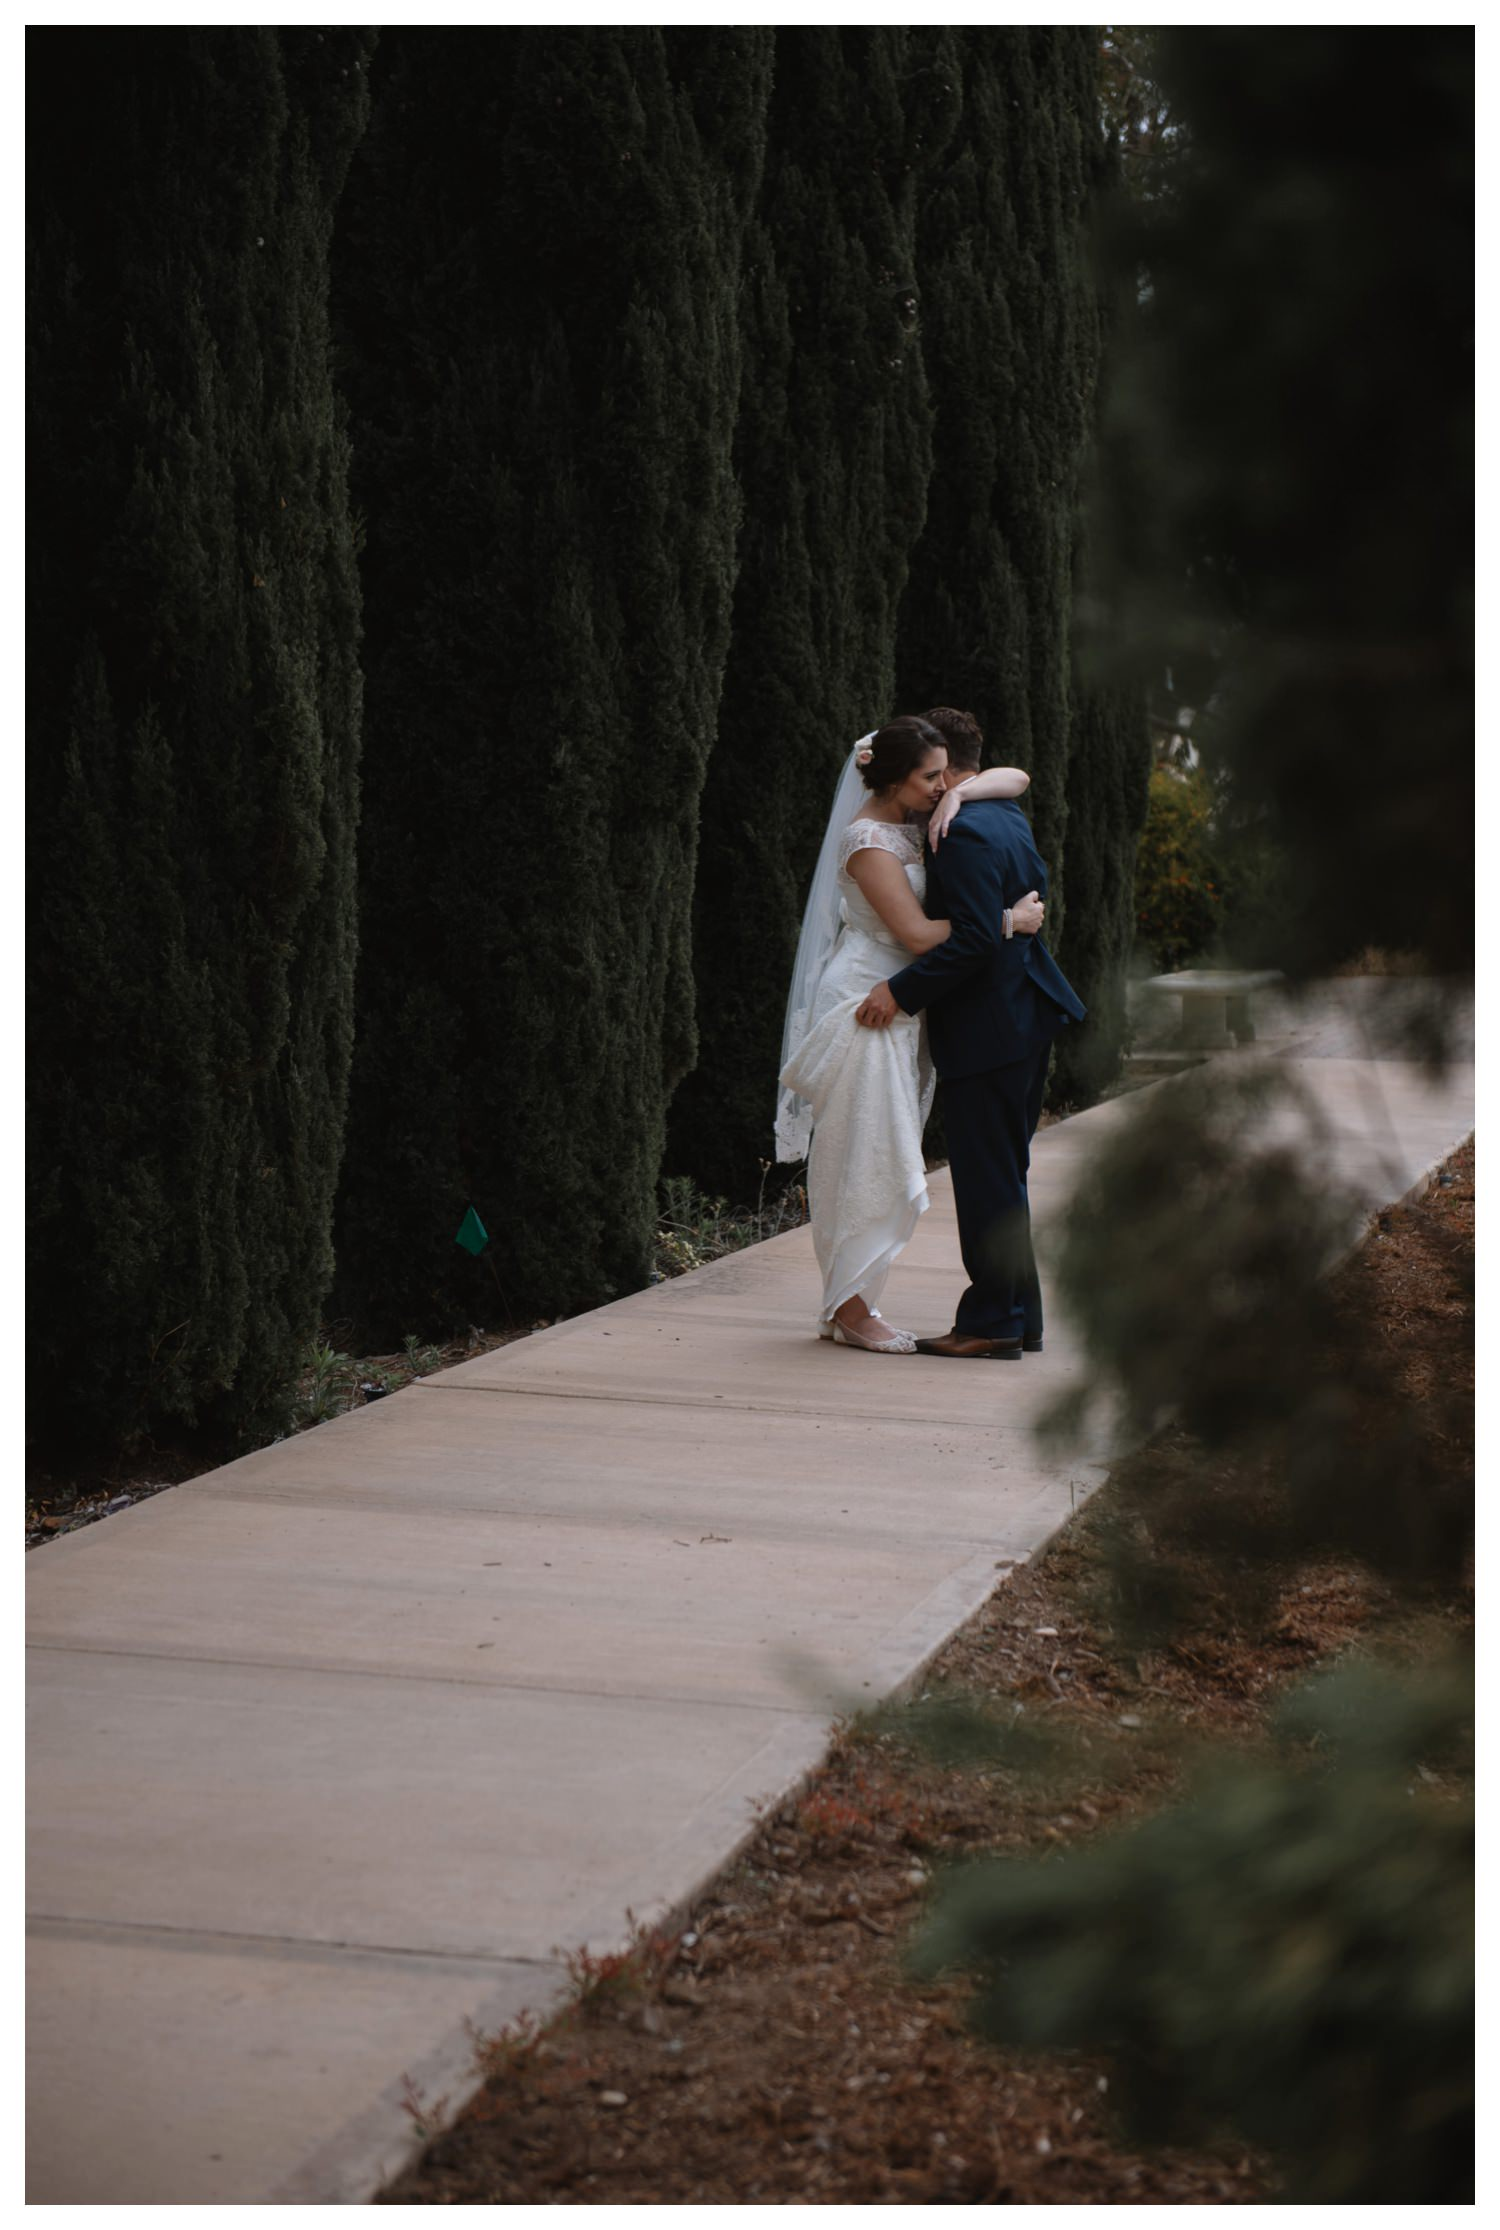 A wedding couple embrace at Balboa Park in San Diego